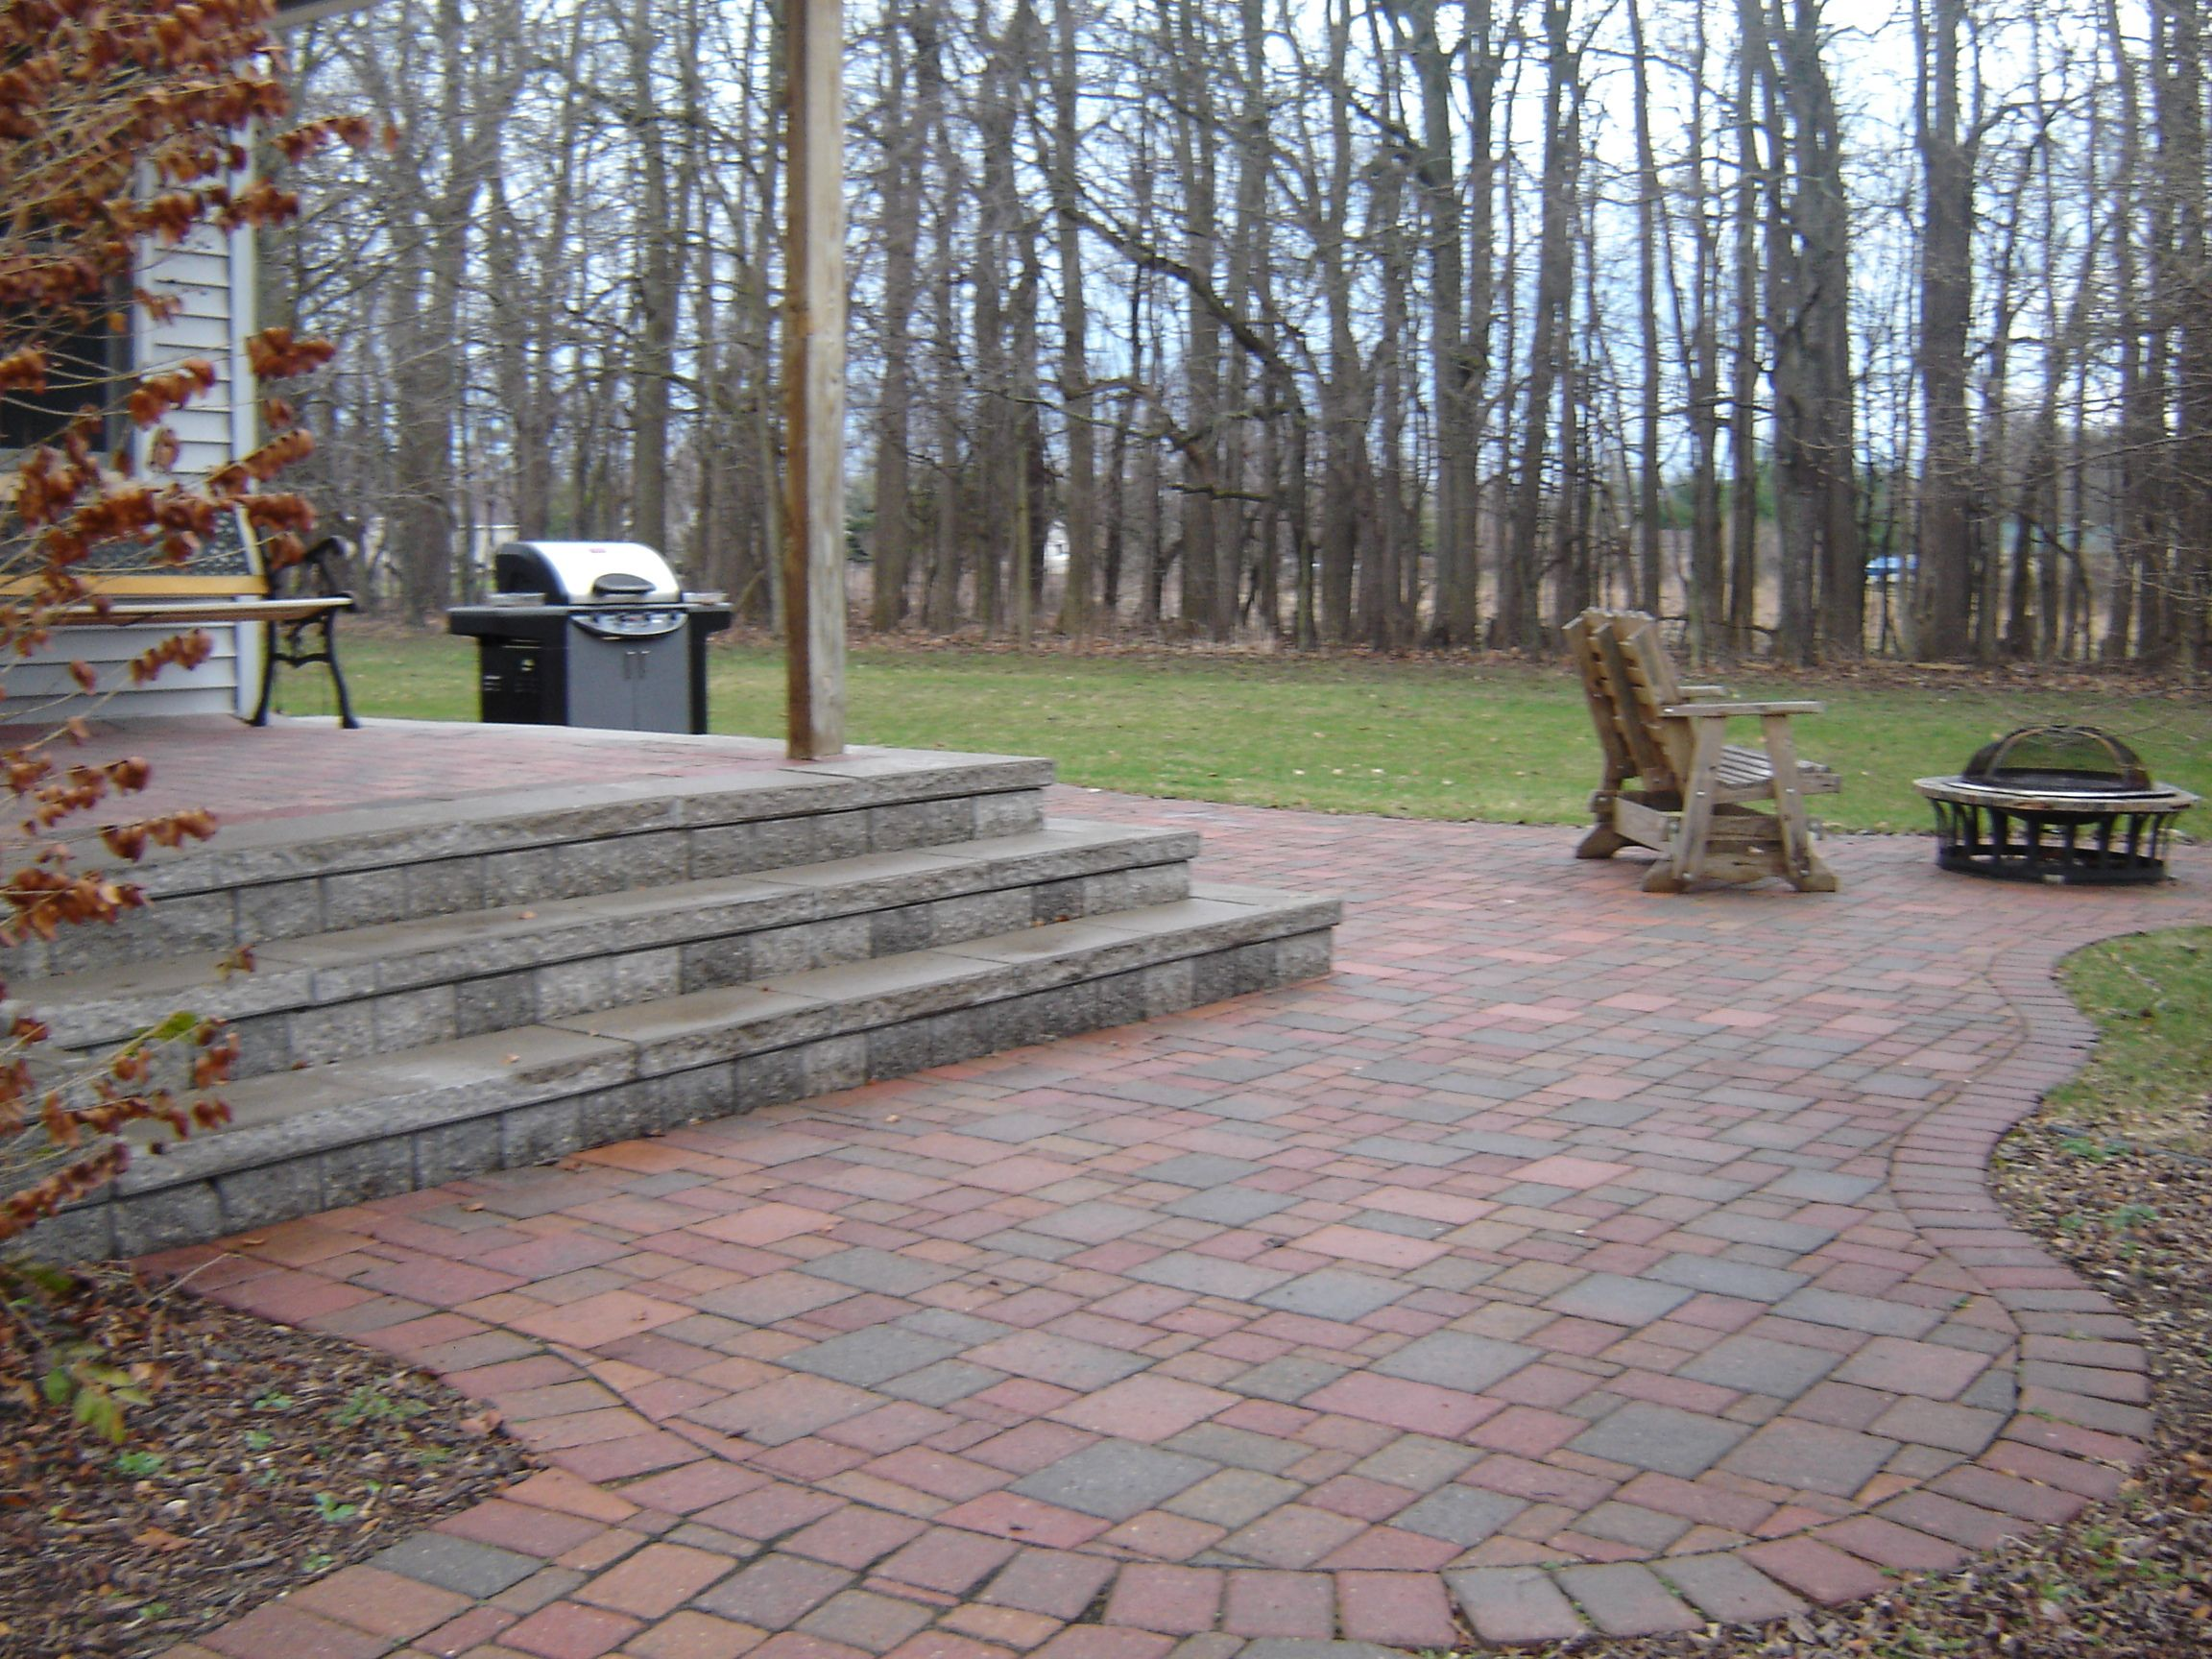 Raised patio ideas - Brick Paver Patio That Steps Up To A Raised Patio